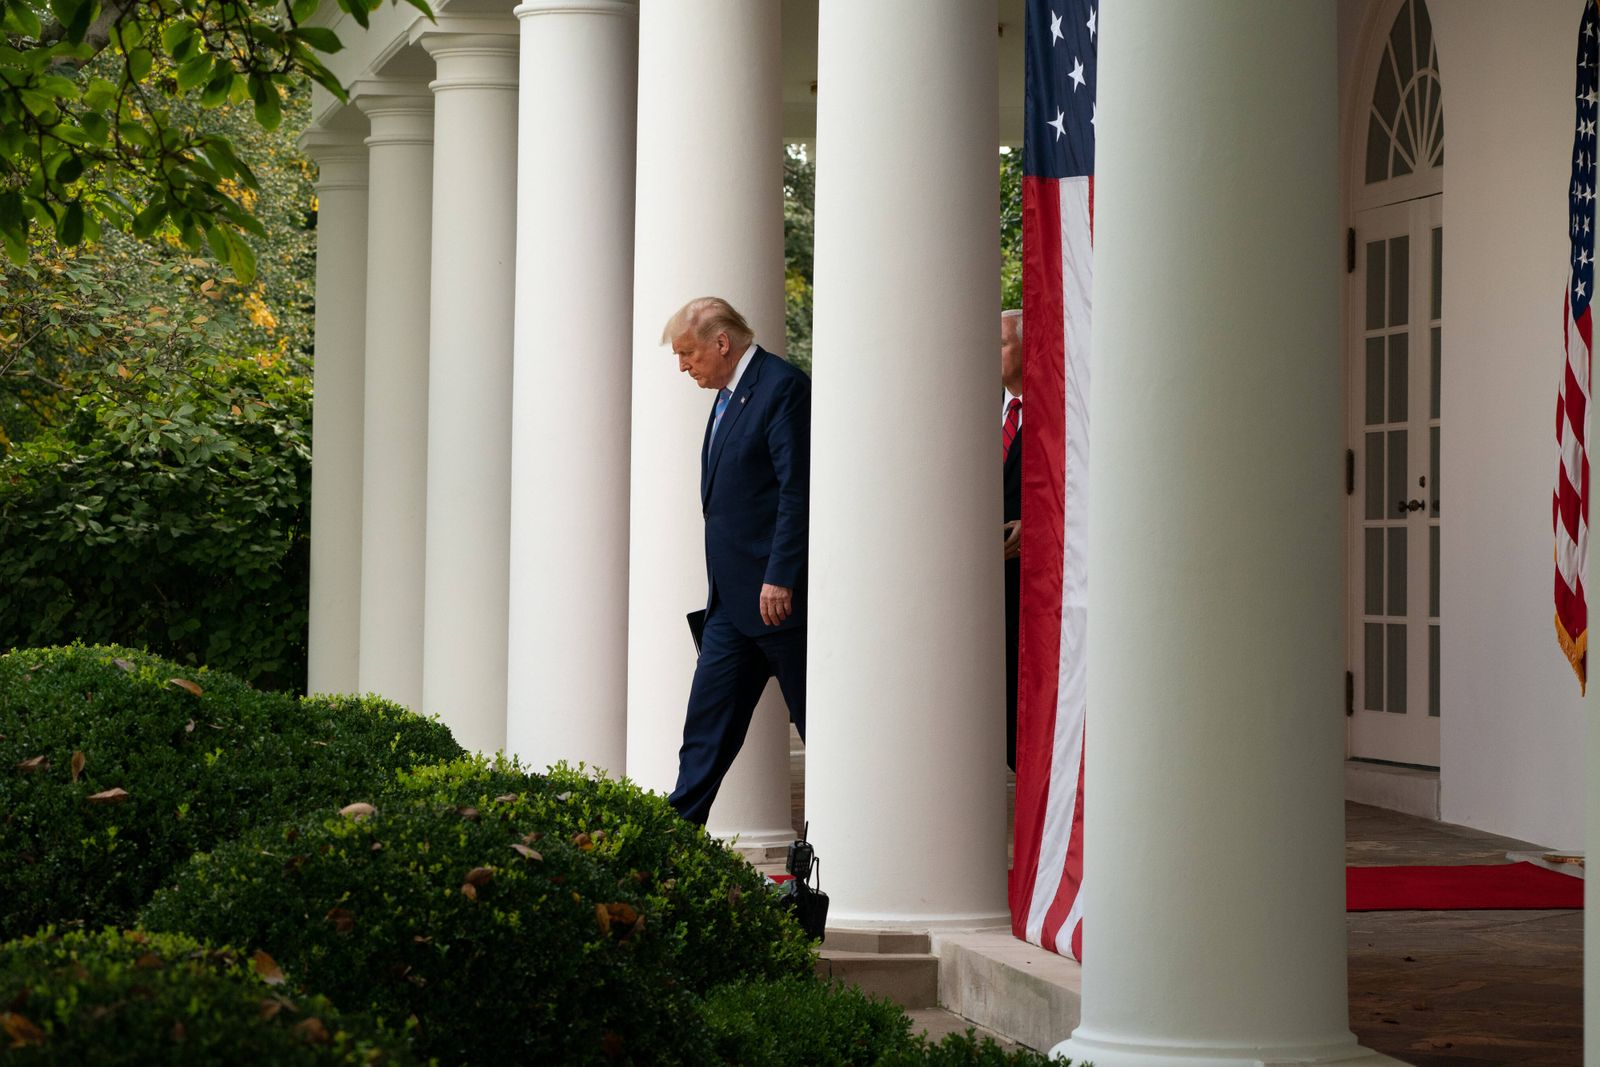 United States President Donald Trump walks out to the Rose Garden with United States Vice President Mike Pence to give